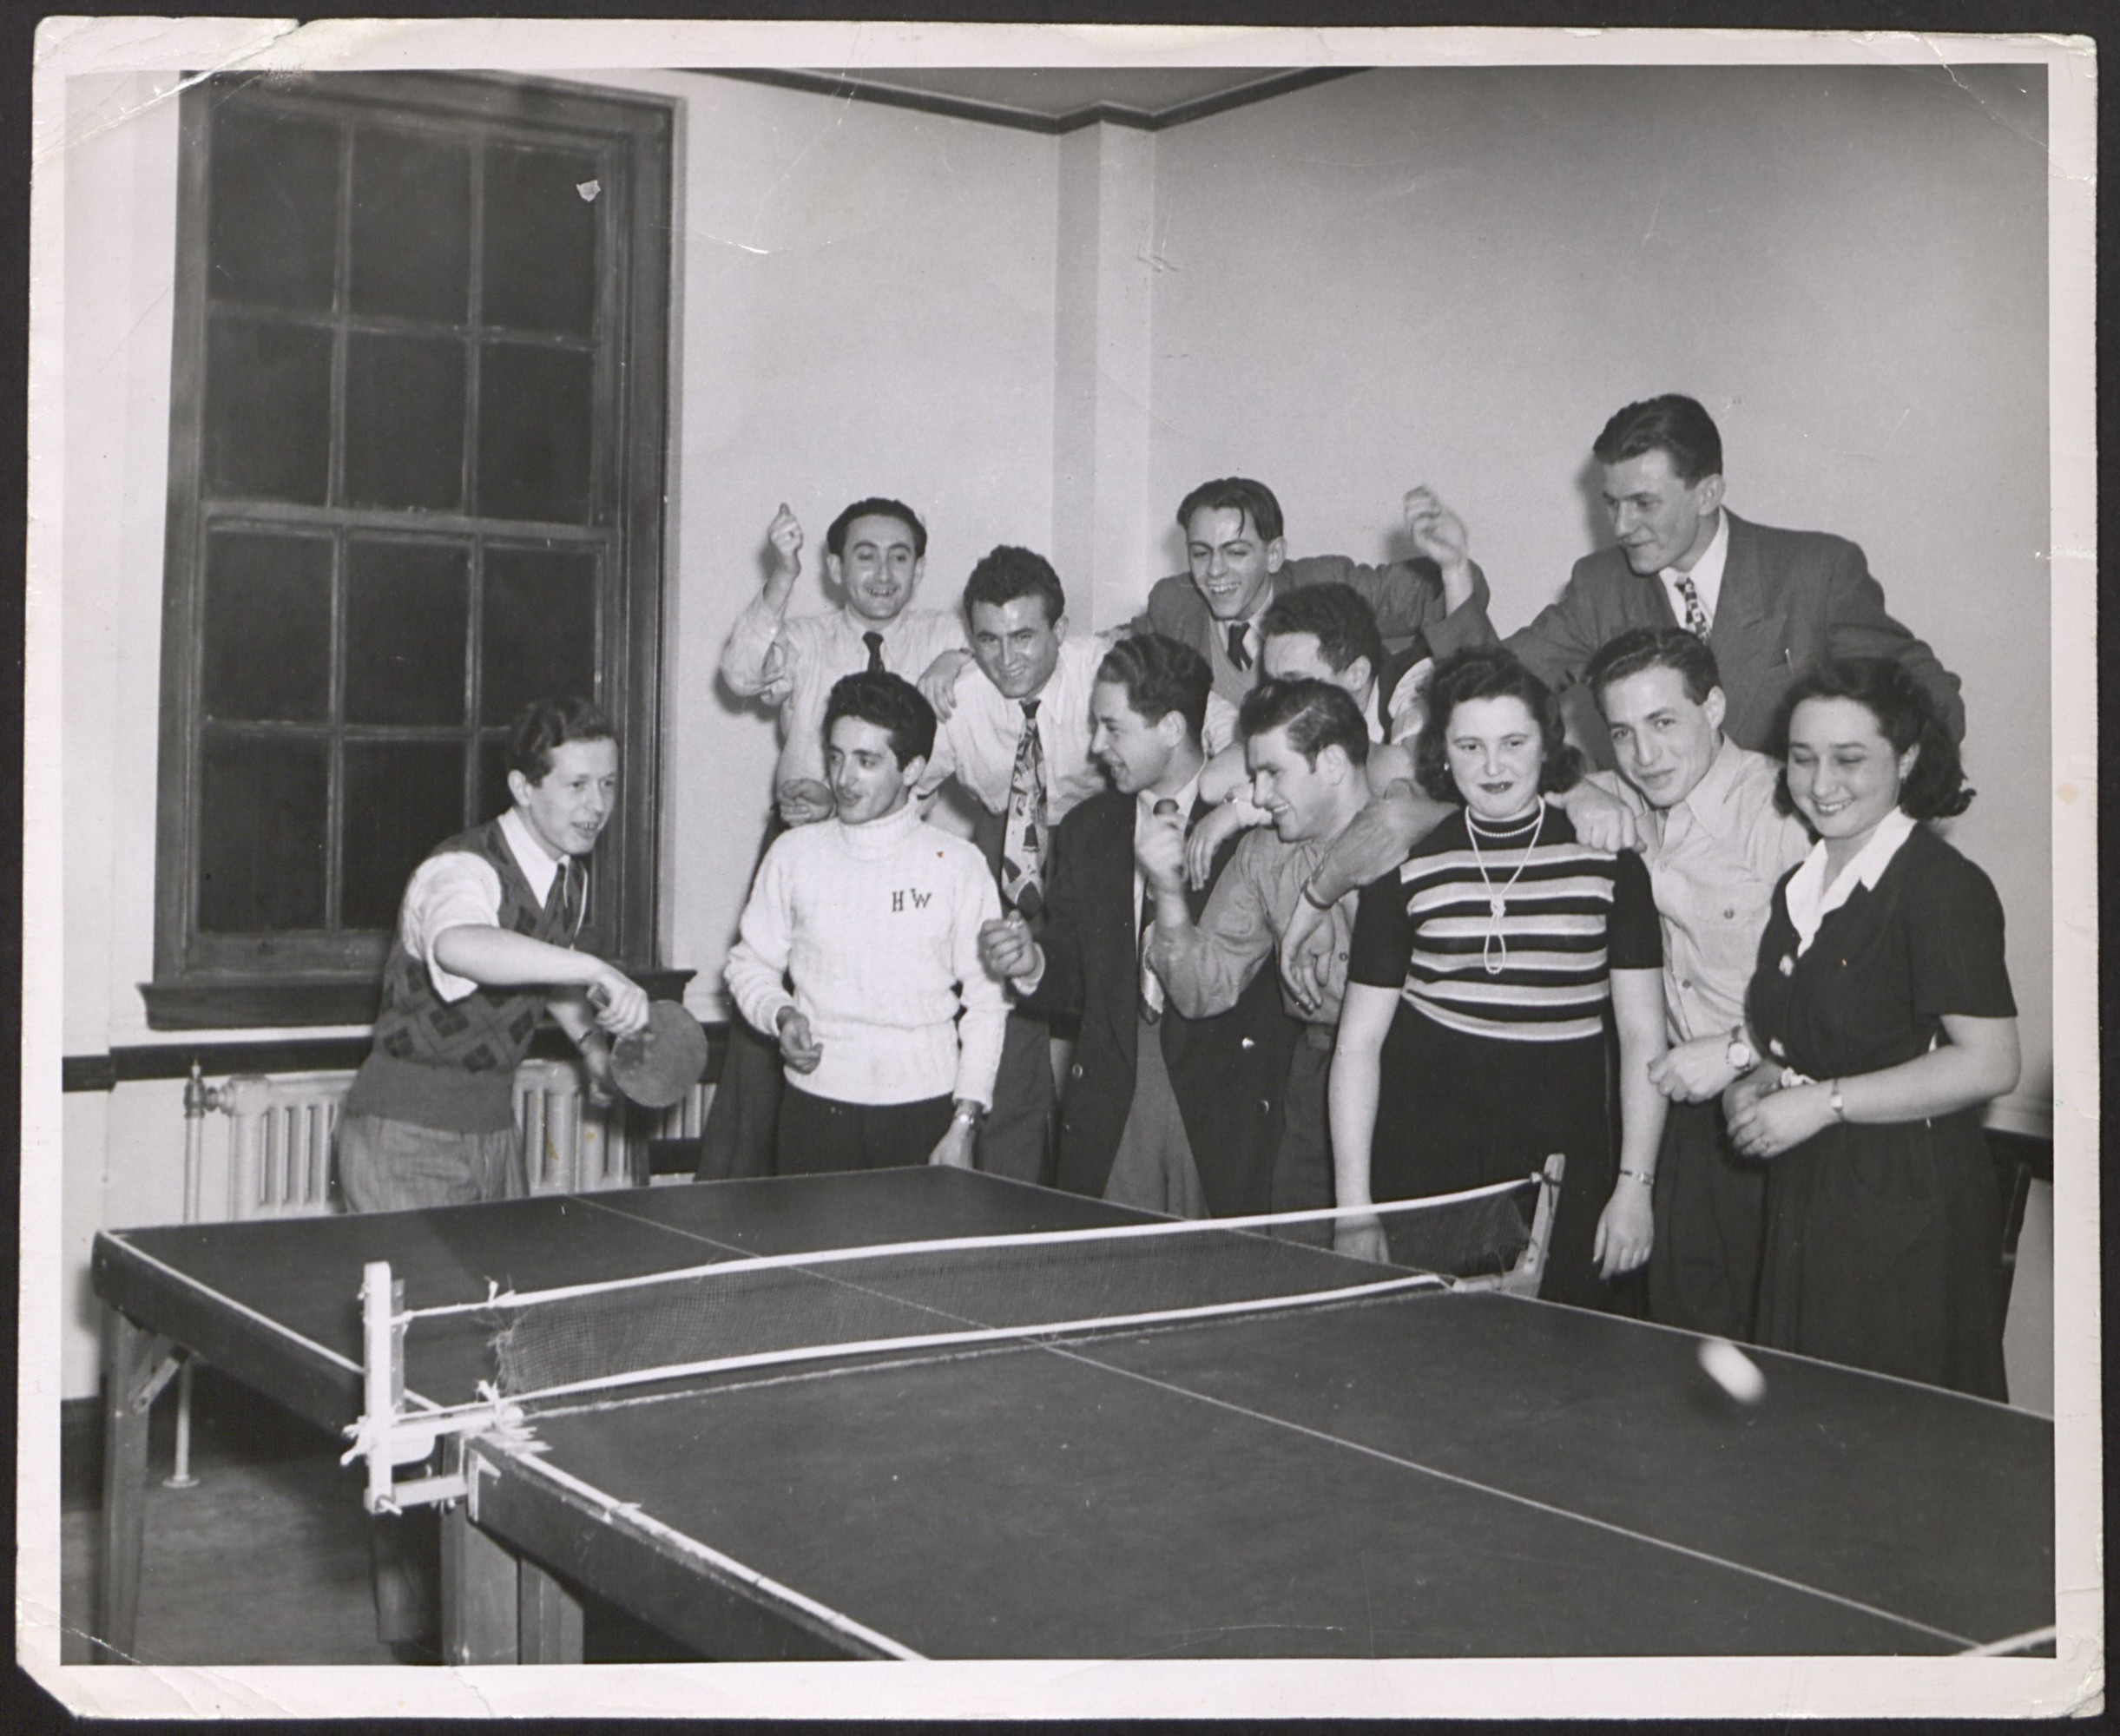 DP youth play ping pong at the Kloster Indersdorf DP children's center.